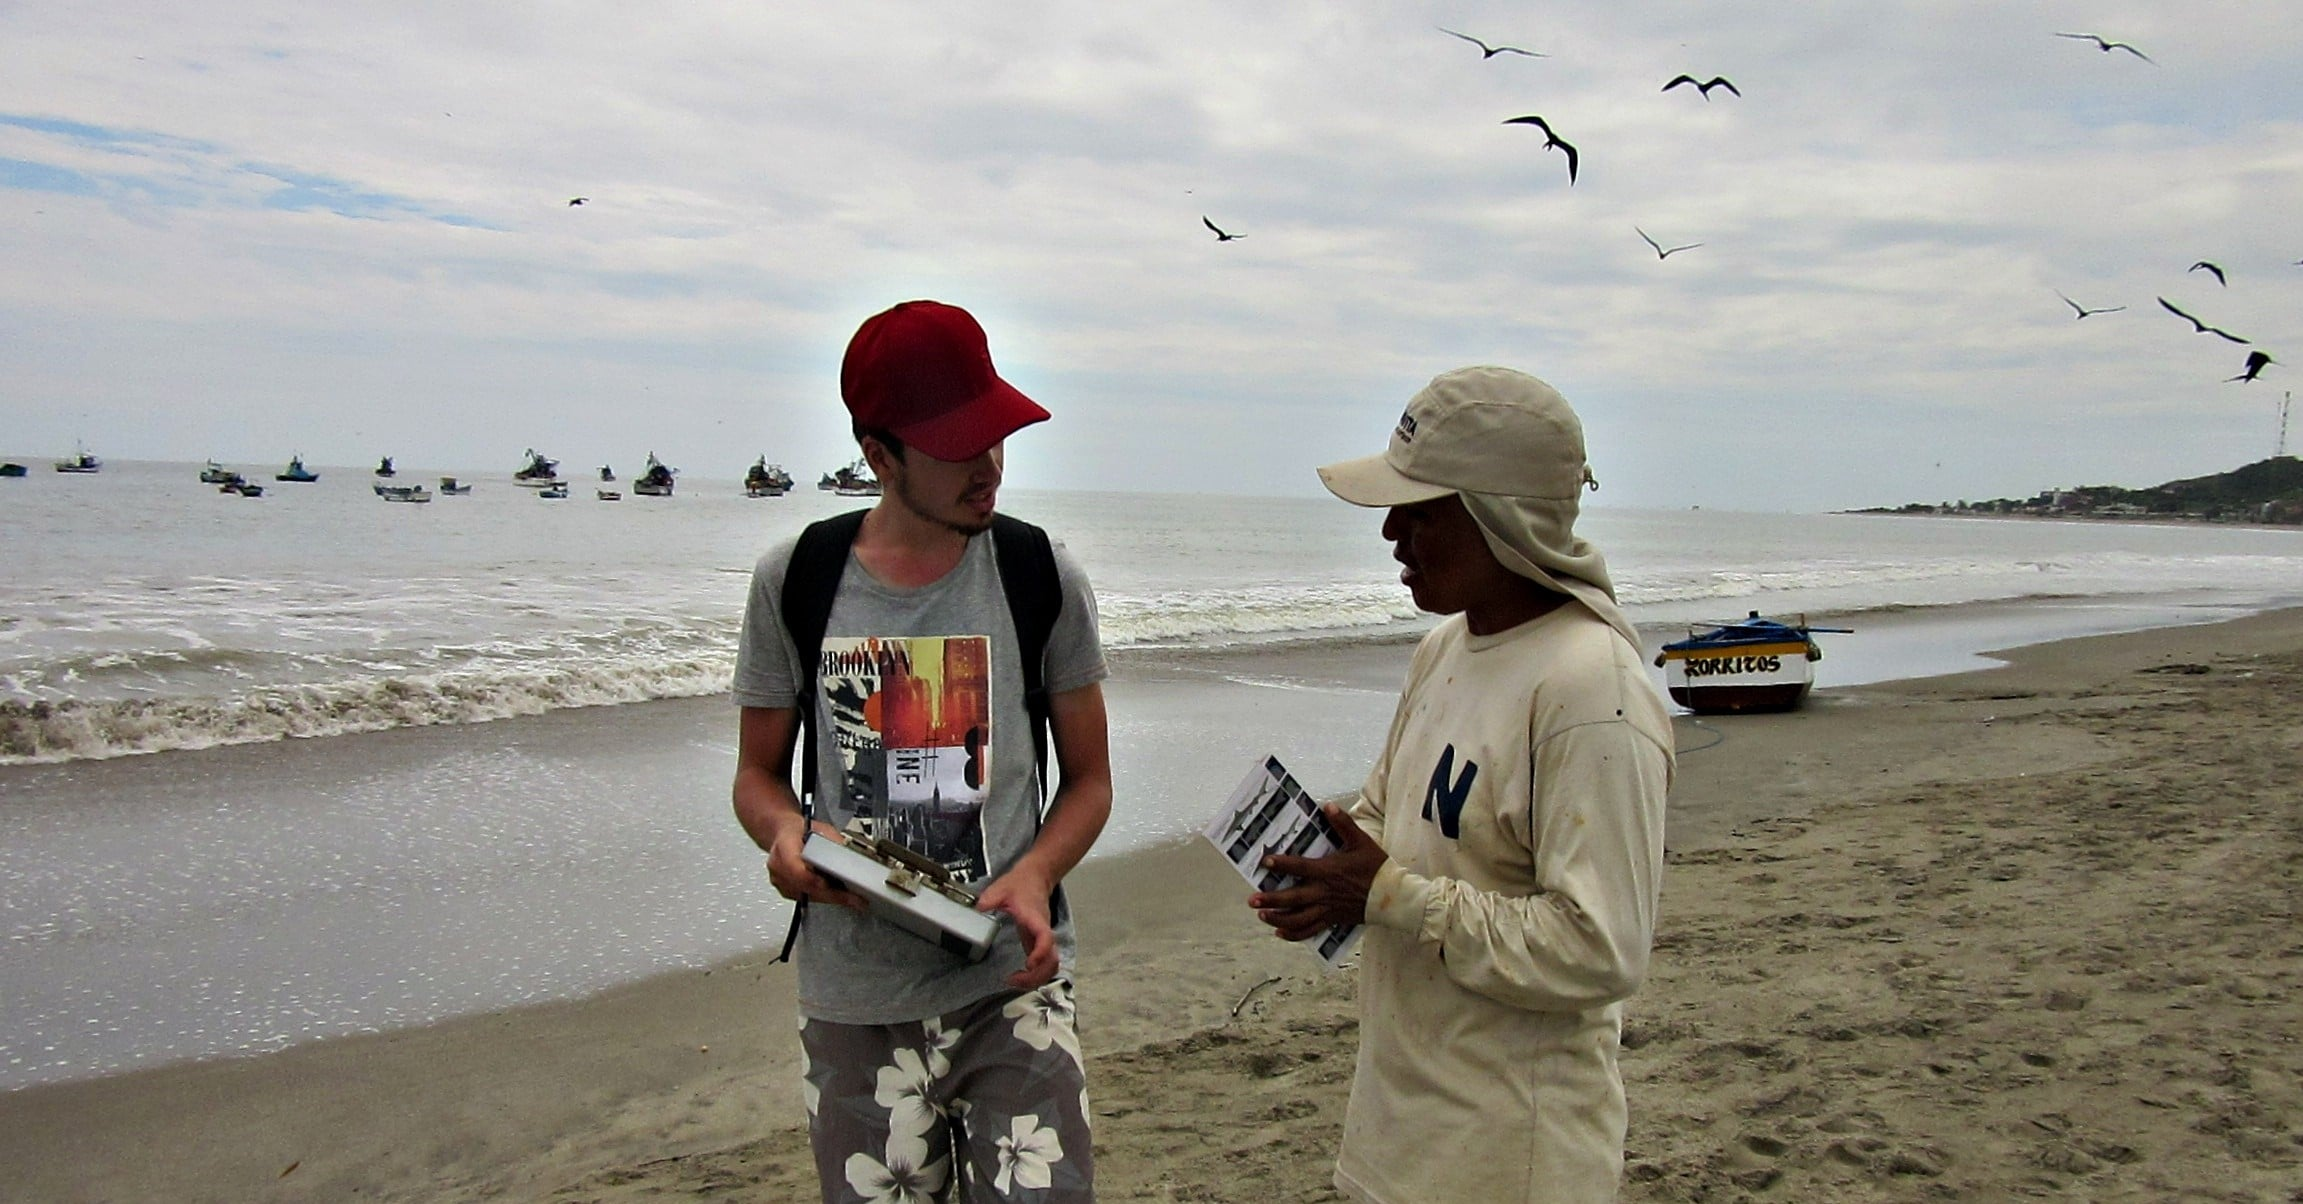 Volunteers working along local staff at Peru Marine Project